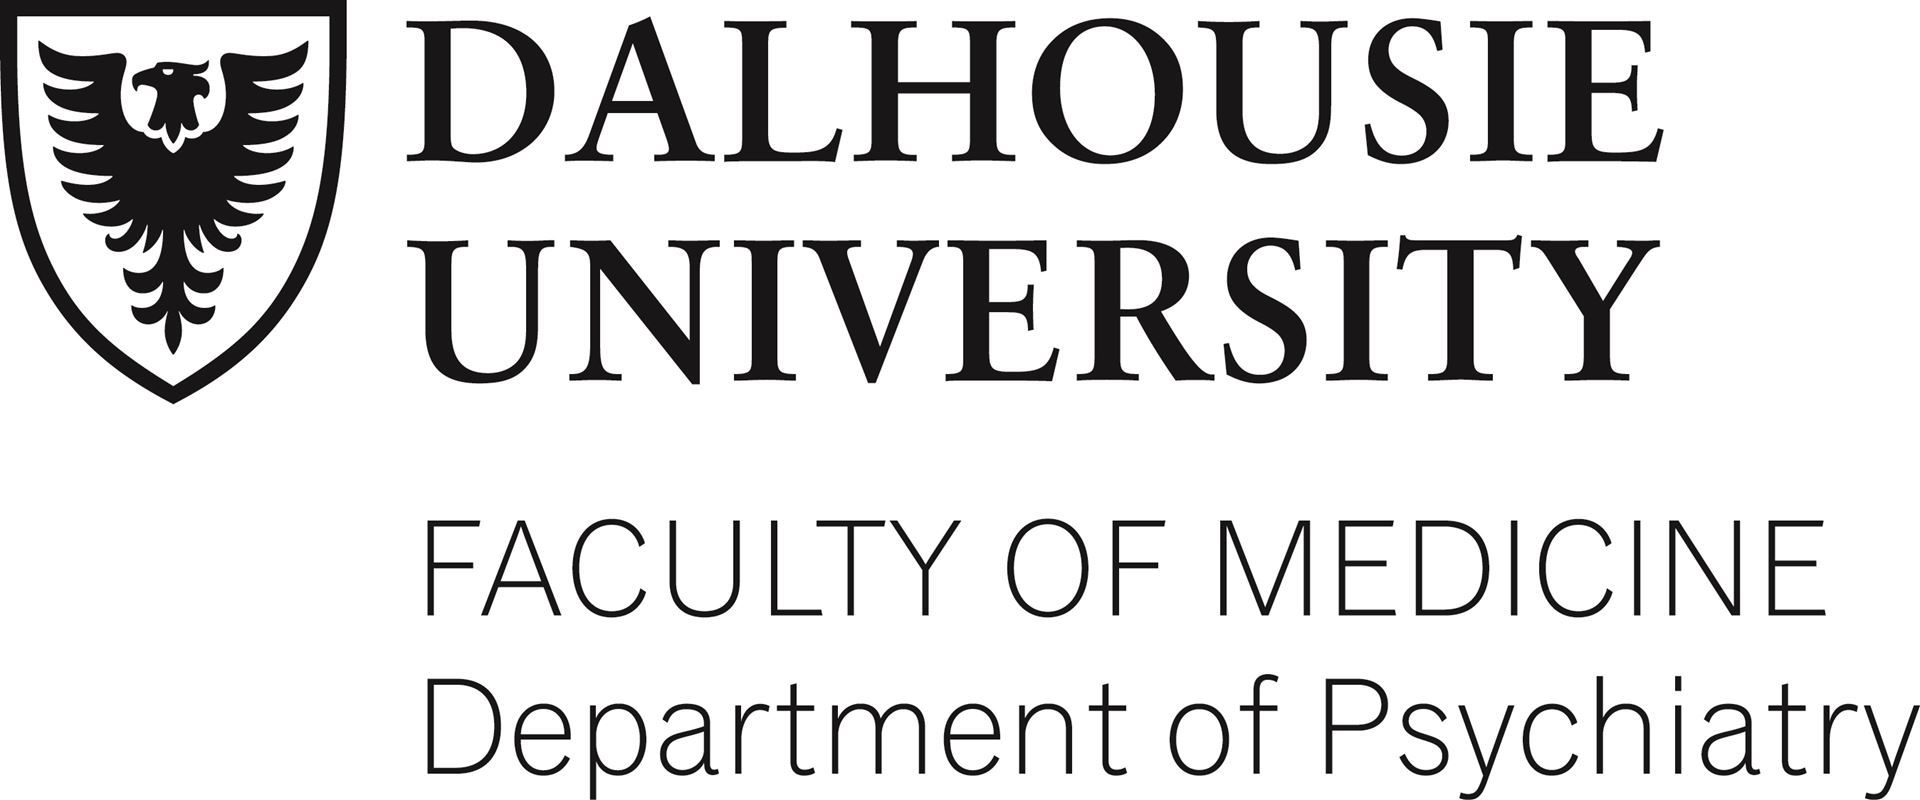 dalhousie e-thesis As the standard language of study at dalhousie university is english, candidates whose native language is not english must demonstrate their capacity to pursue a graduate-level program in english before admission to any of our graduate programs.